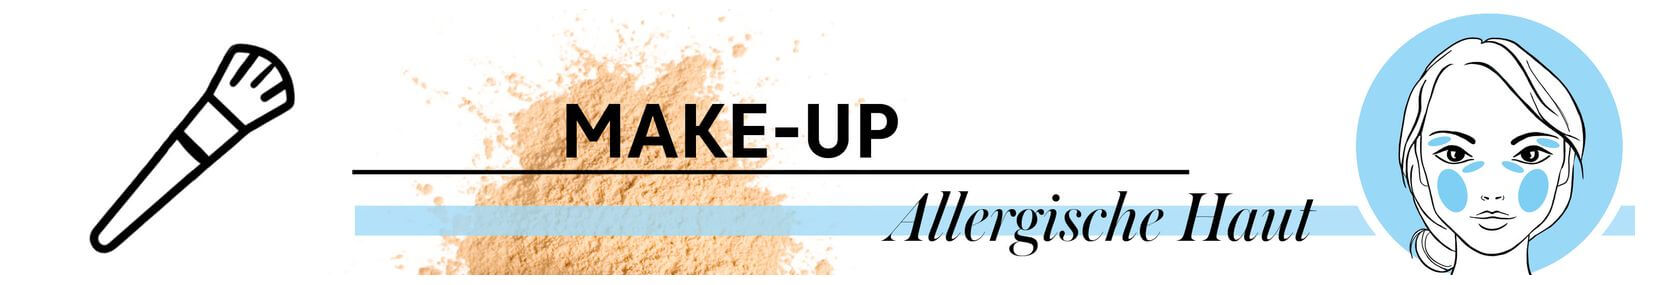 Allergische Haut Make-up